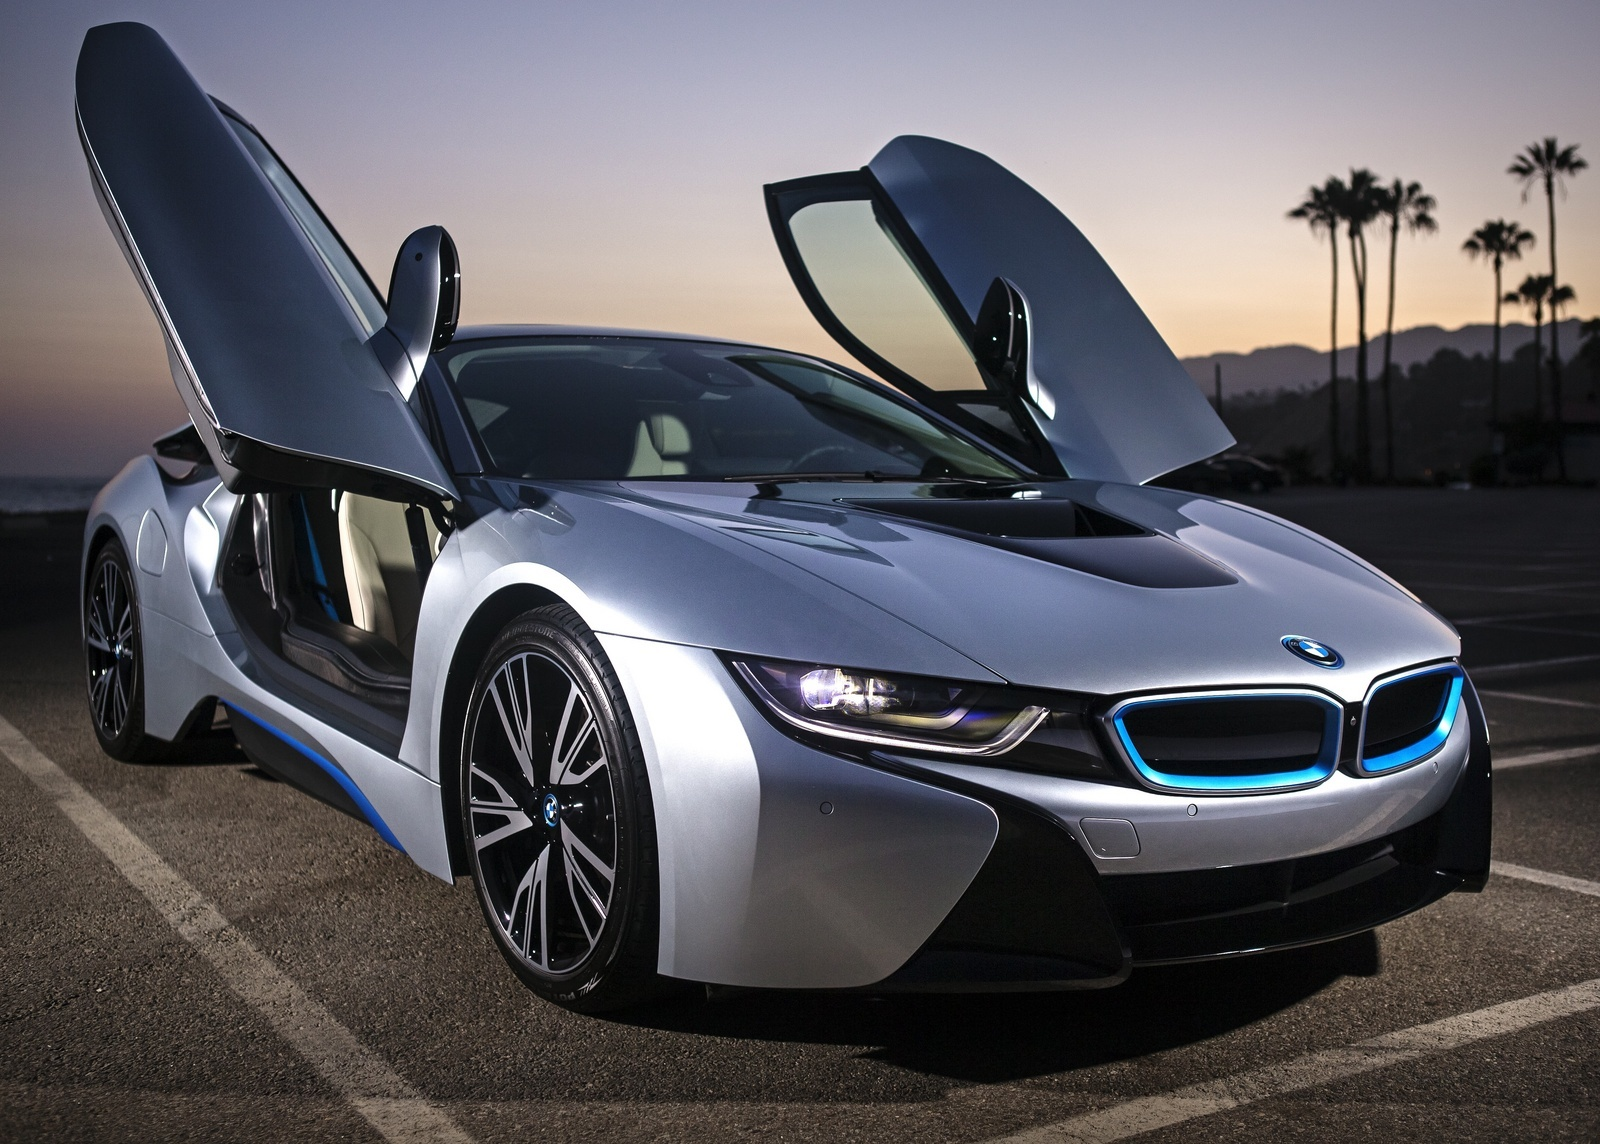 BMW I Overview CarGurus - 2015 bmw i8 for sale